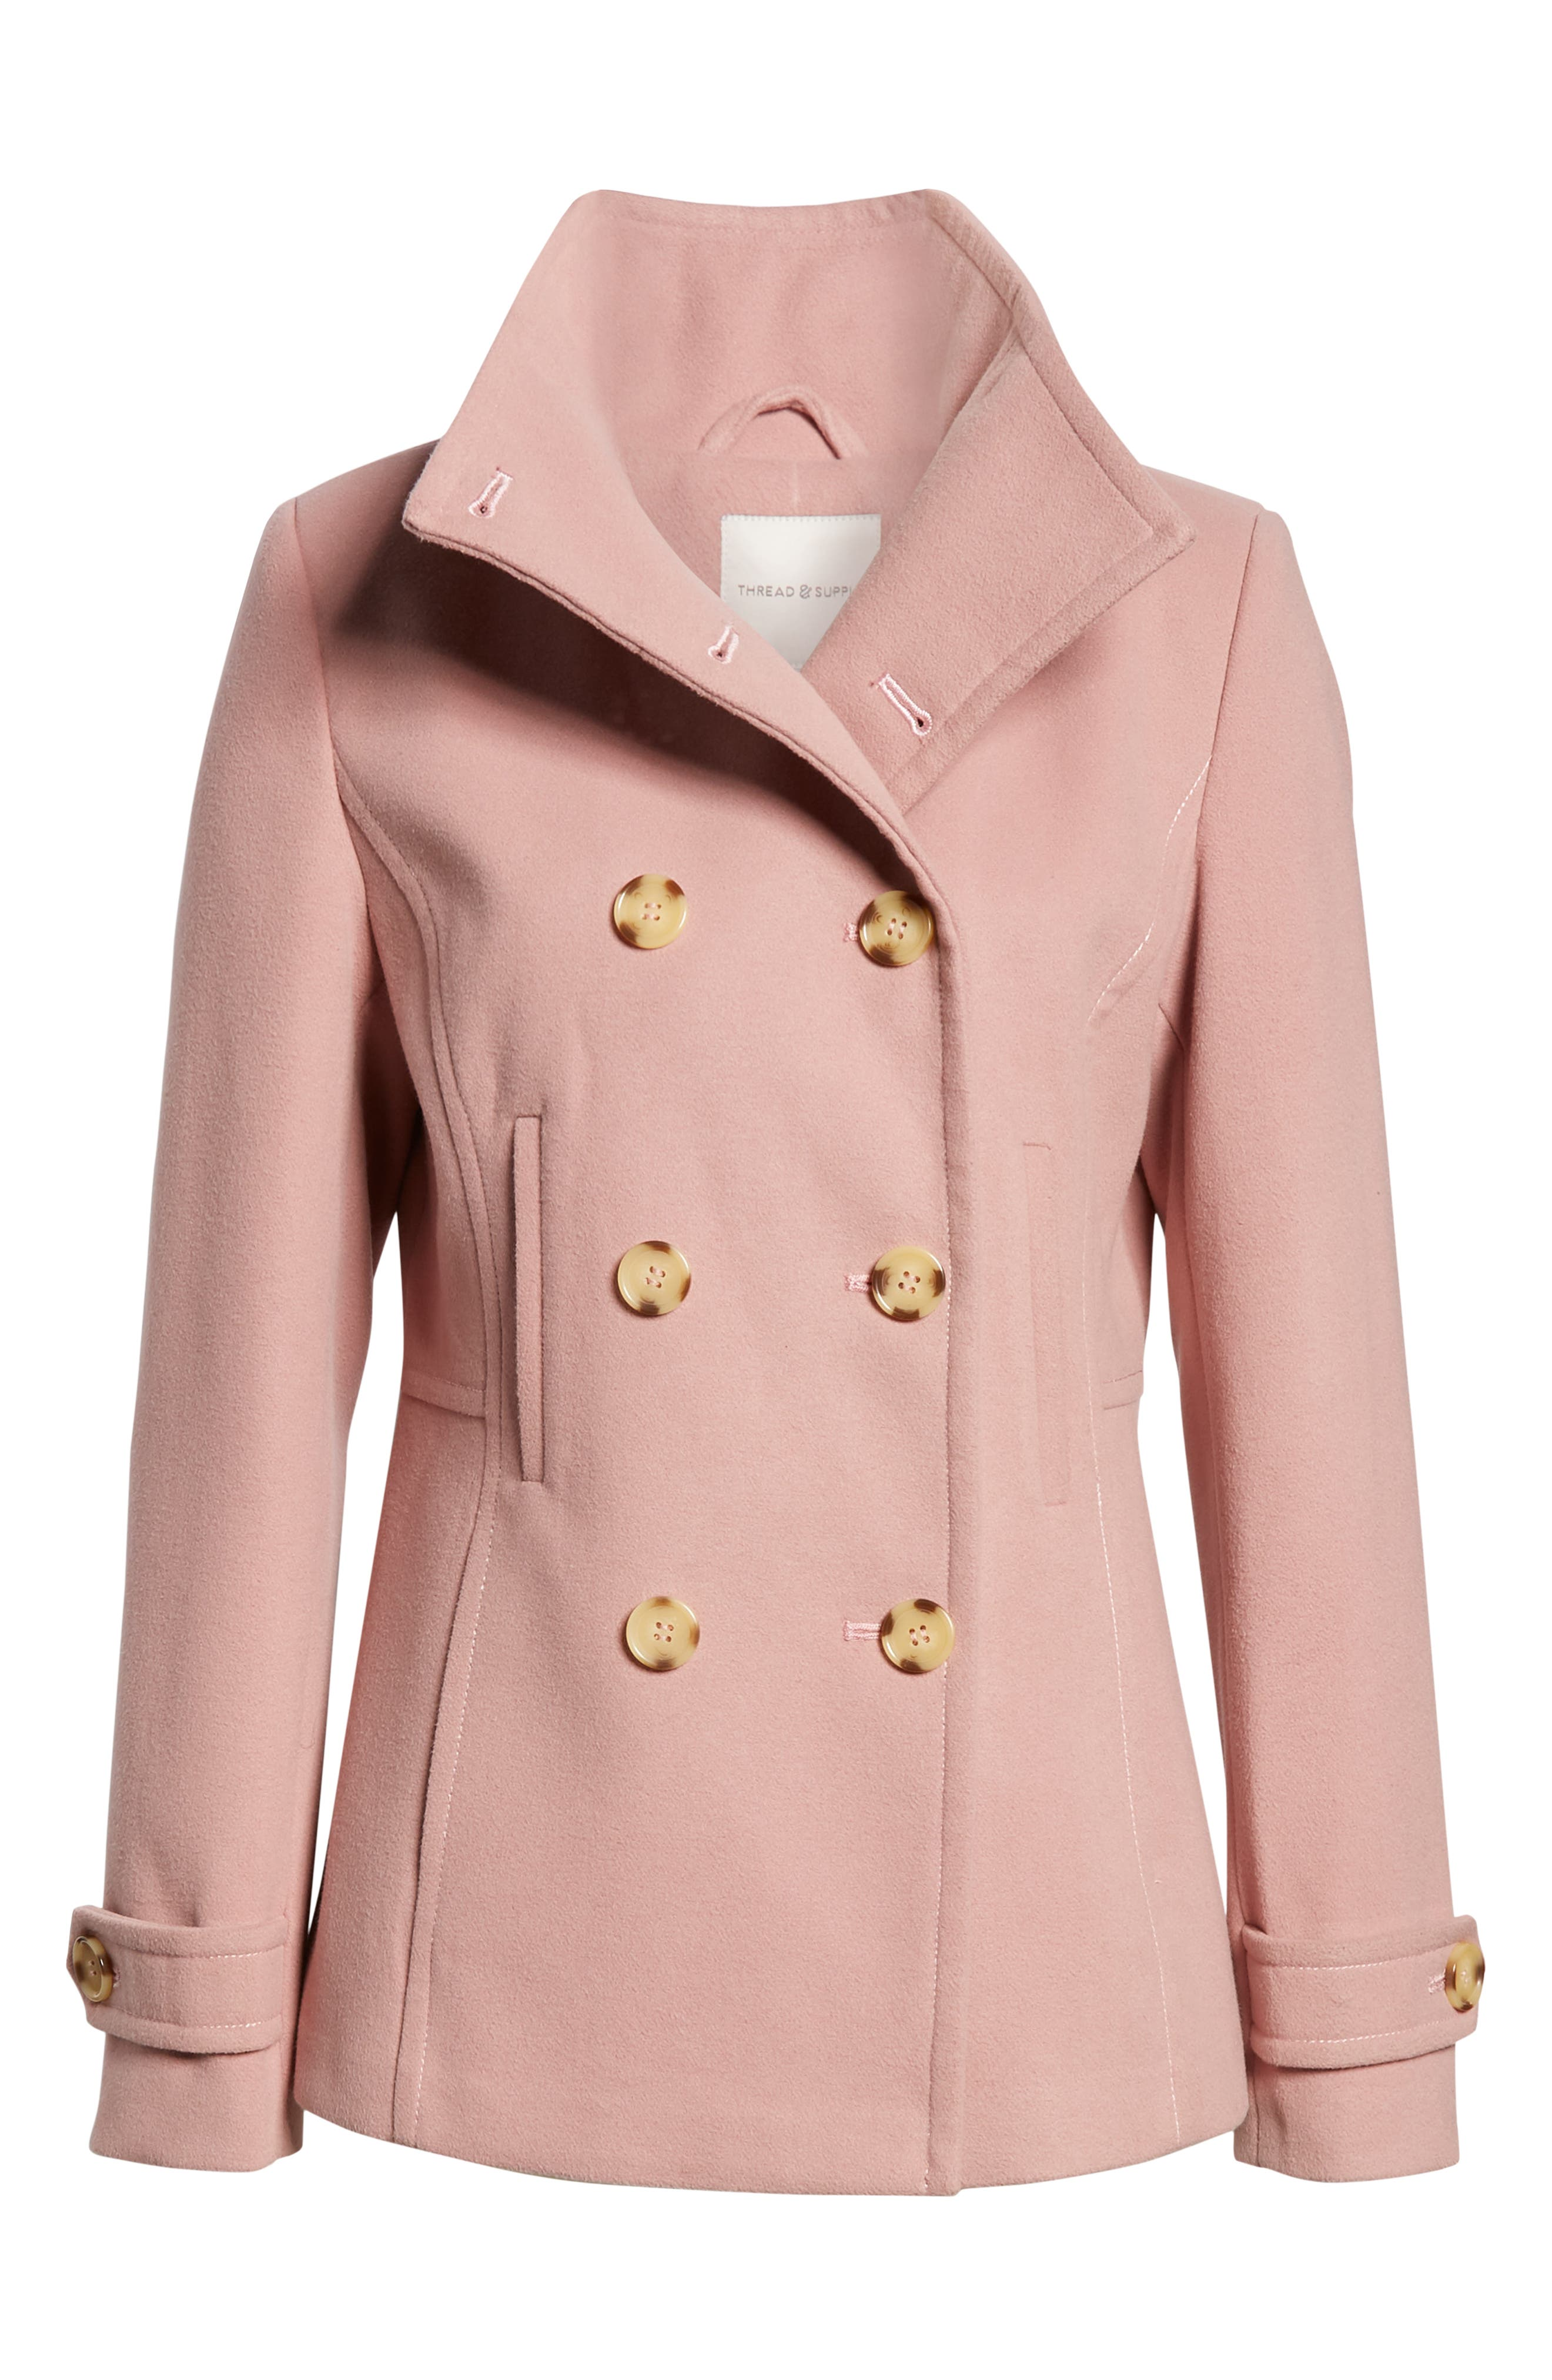 THREAD & SUPPLY,                             Double Breasted Peacoat,                             Alternate thumbnail 6, color,                             BLUSH